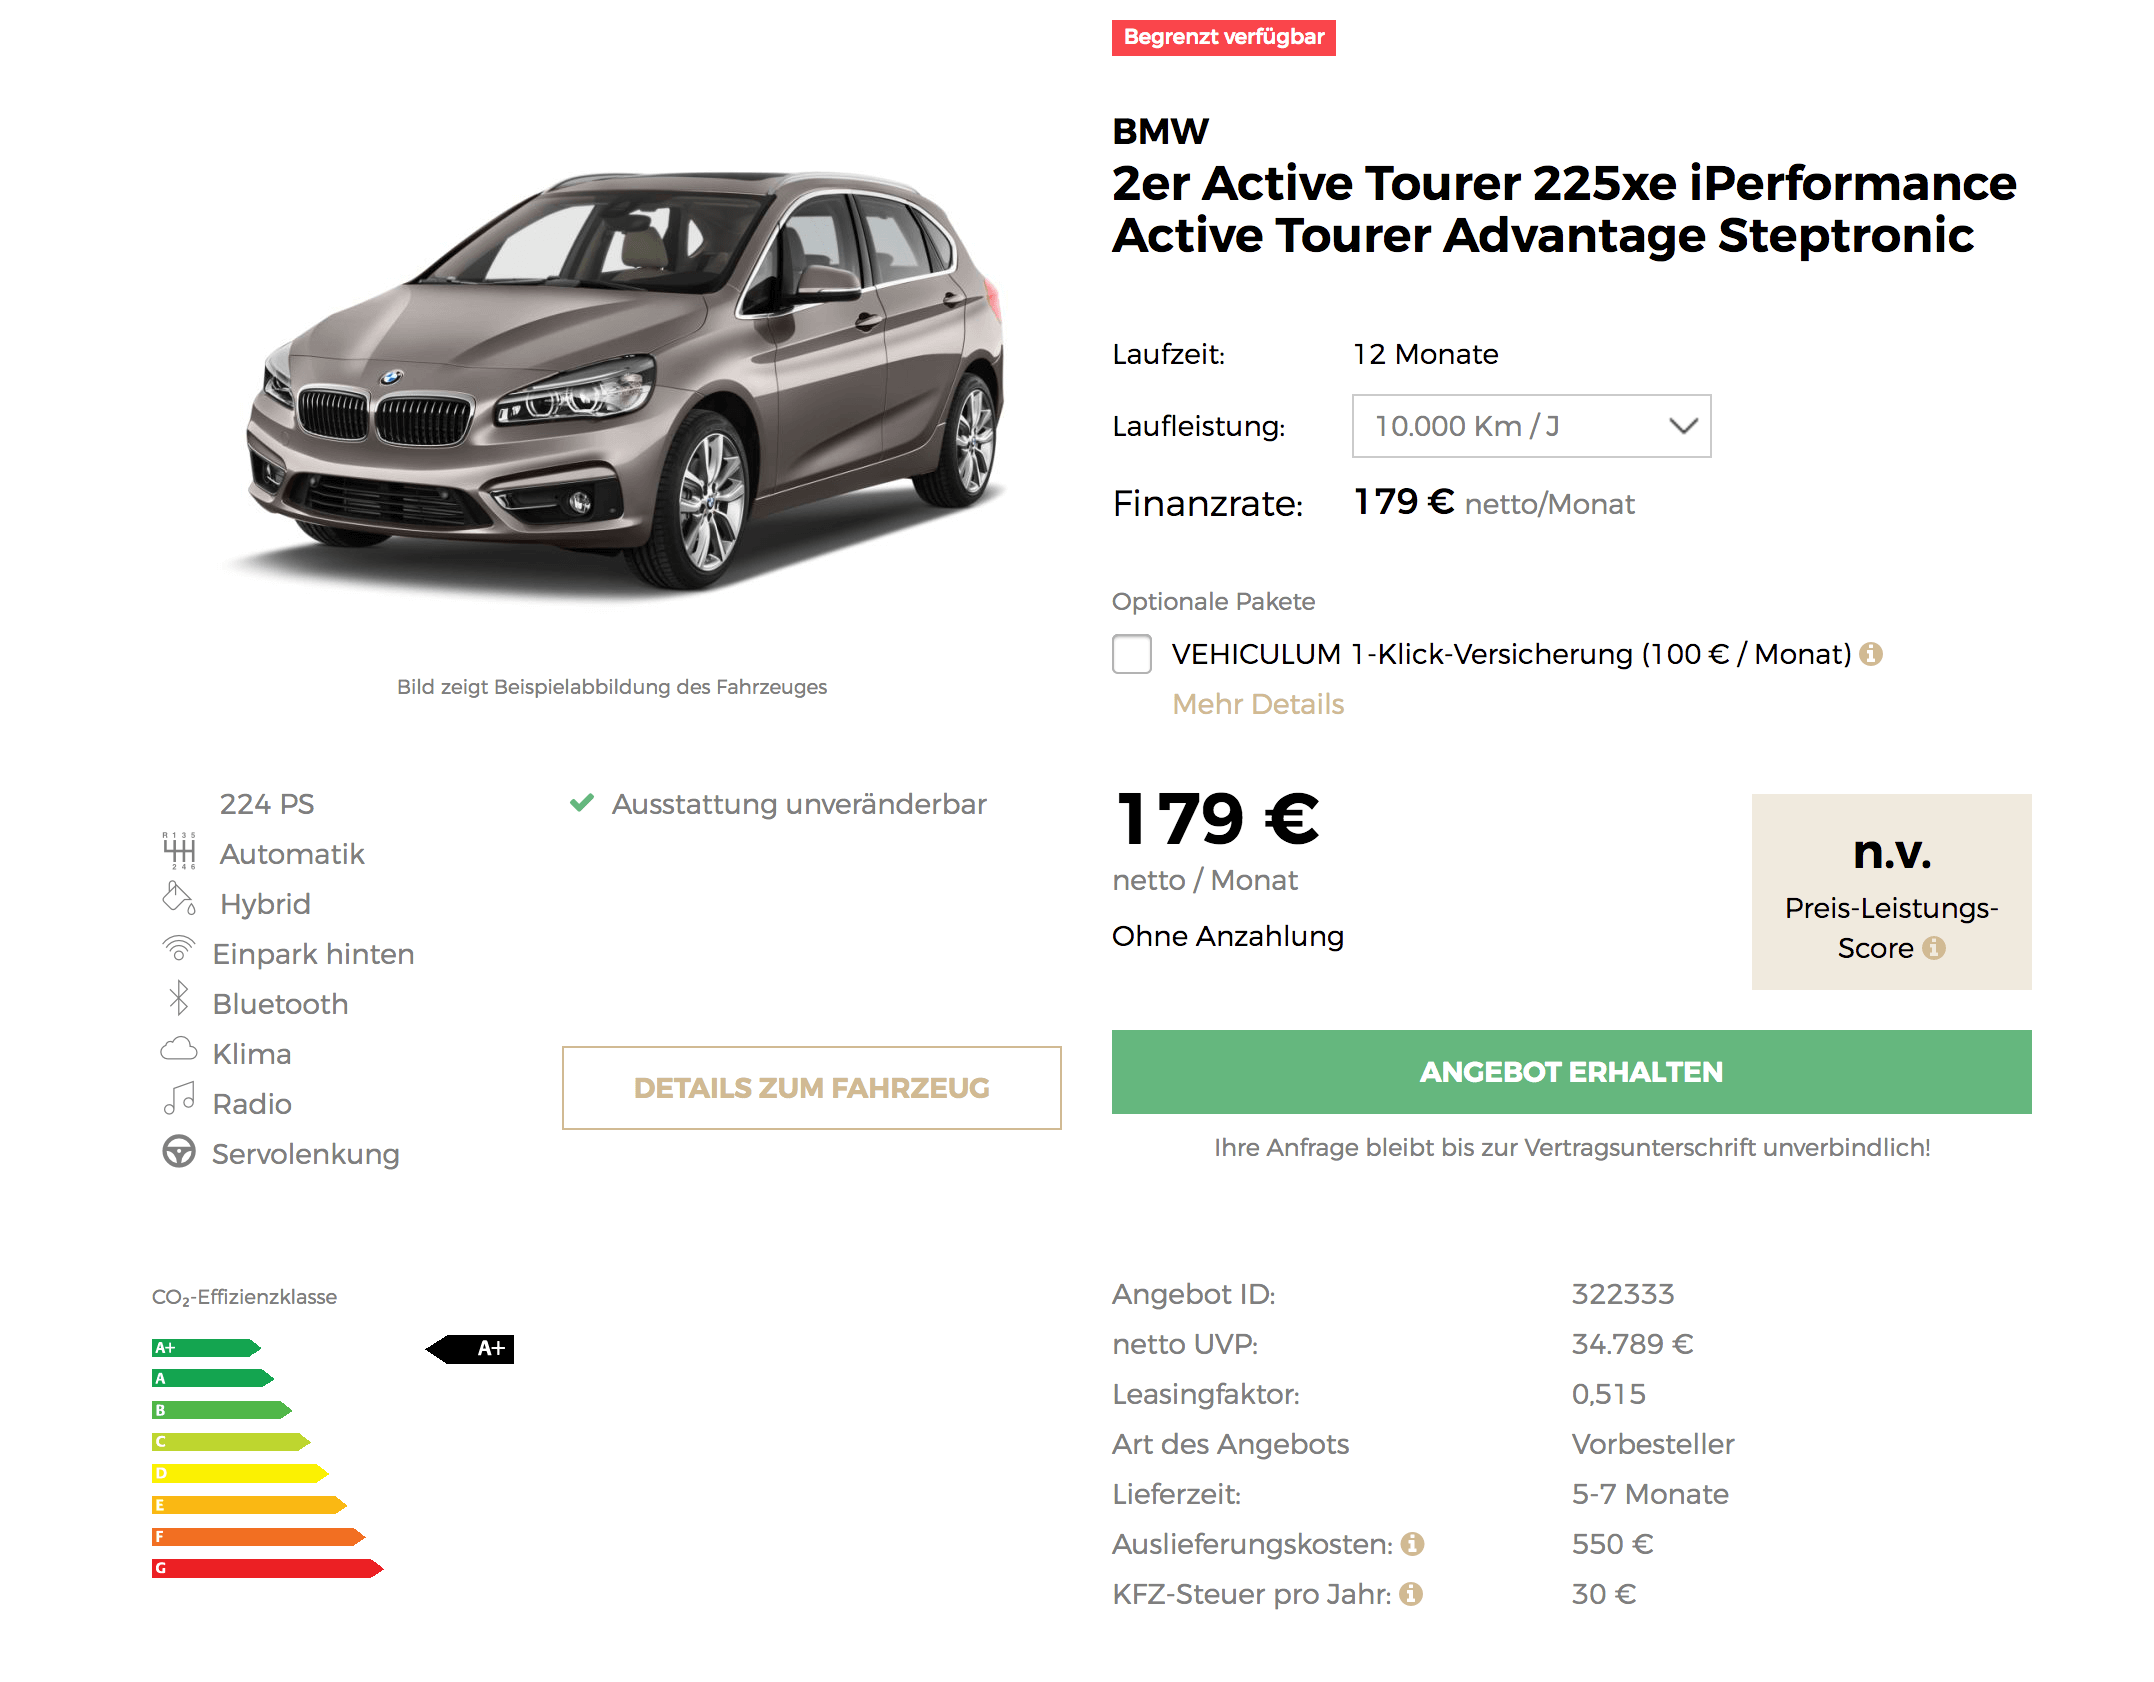 bmw 225xe active tourer leasing f r 179 euro im monat. Black Bedroom Furniture Sets. Home Design Ideas